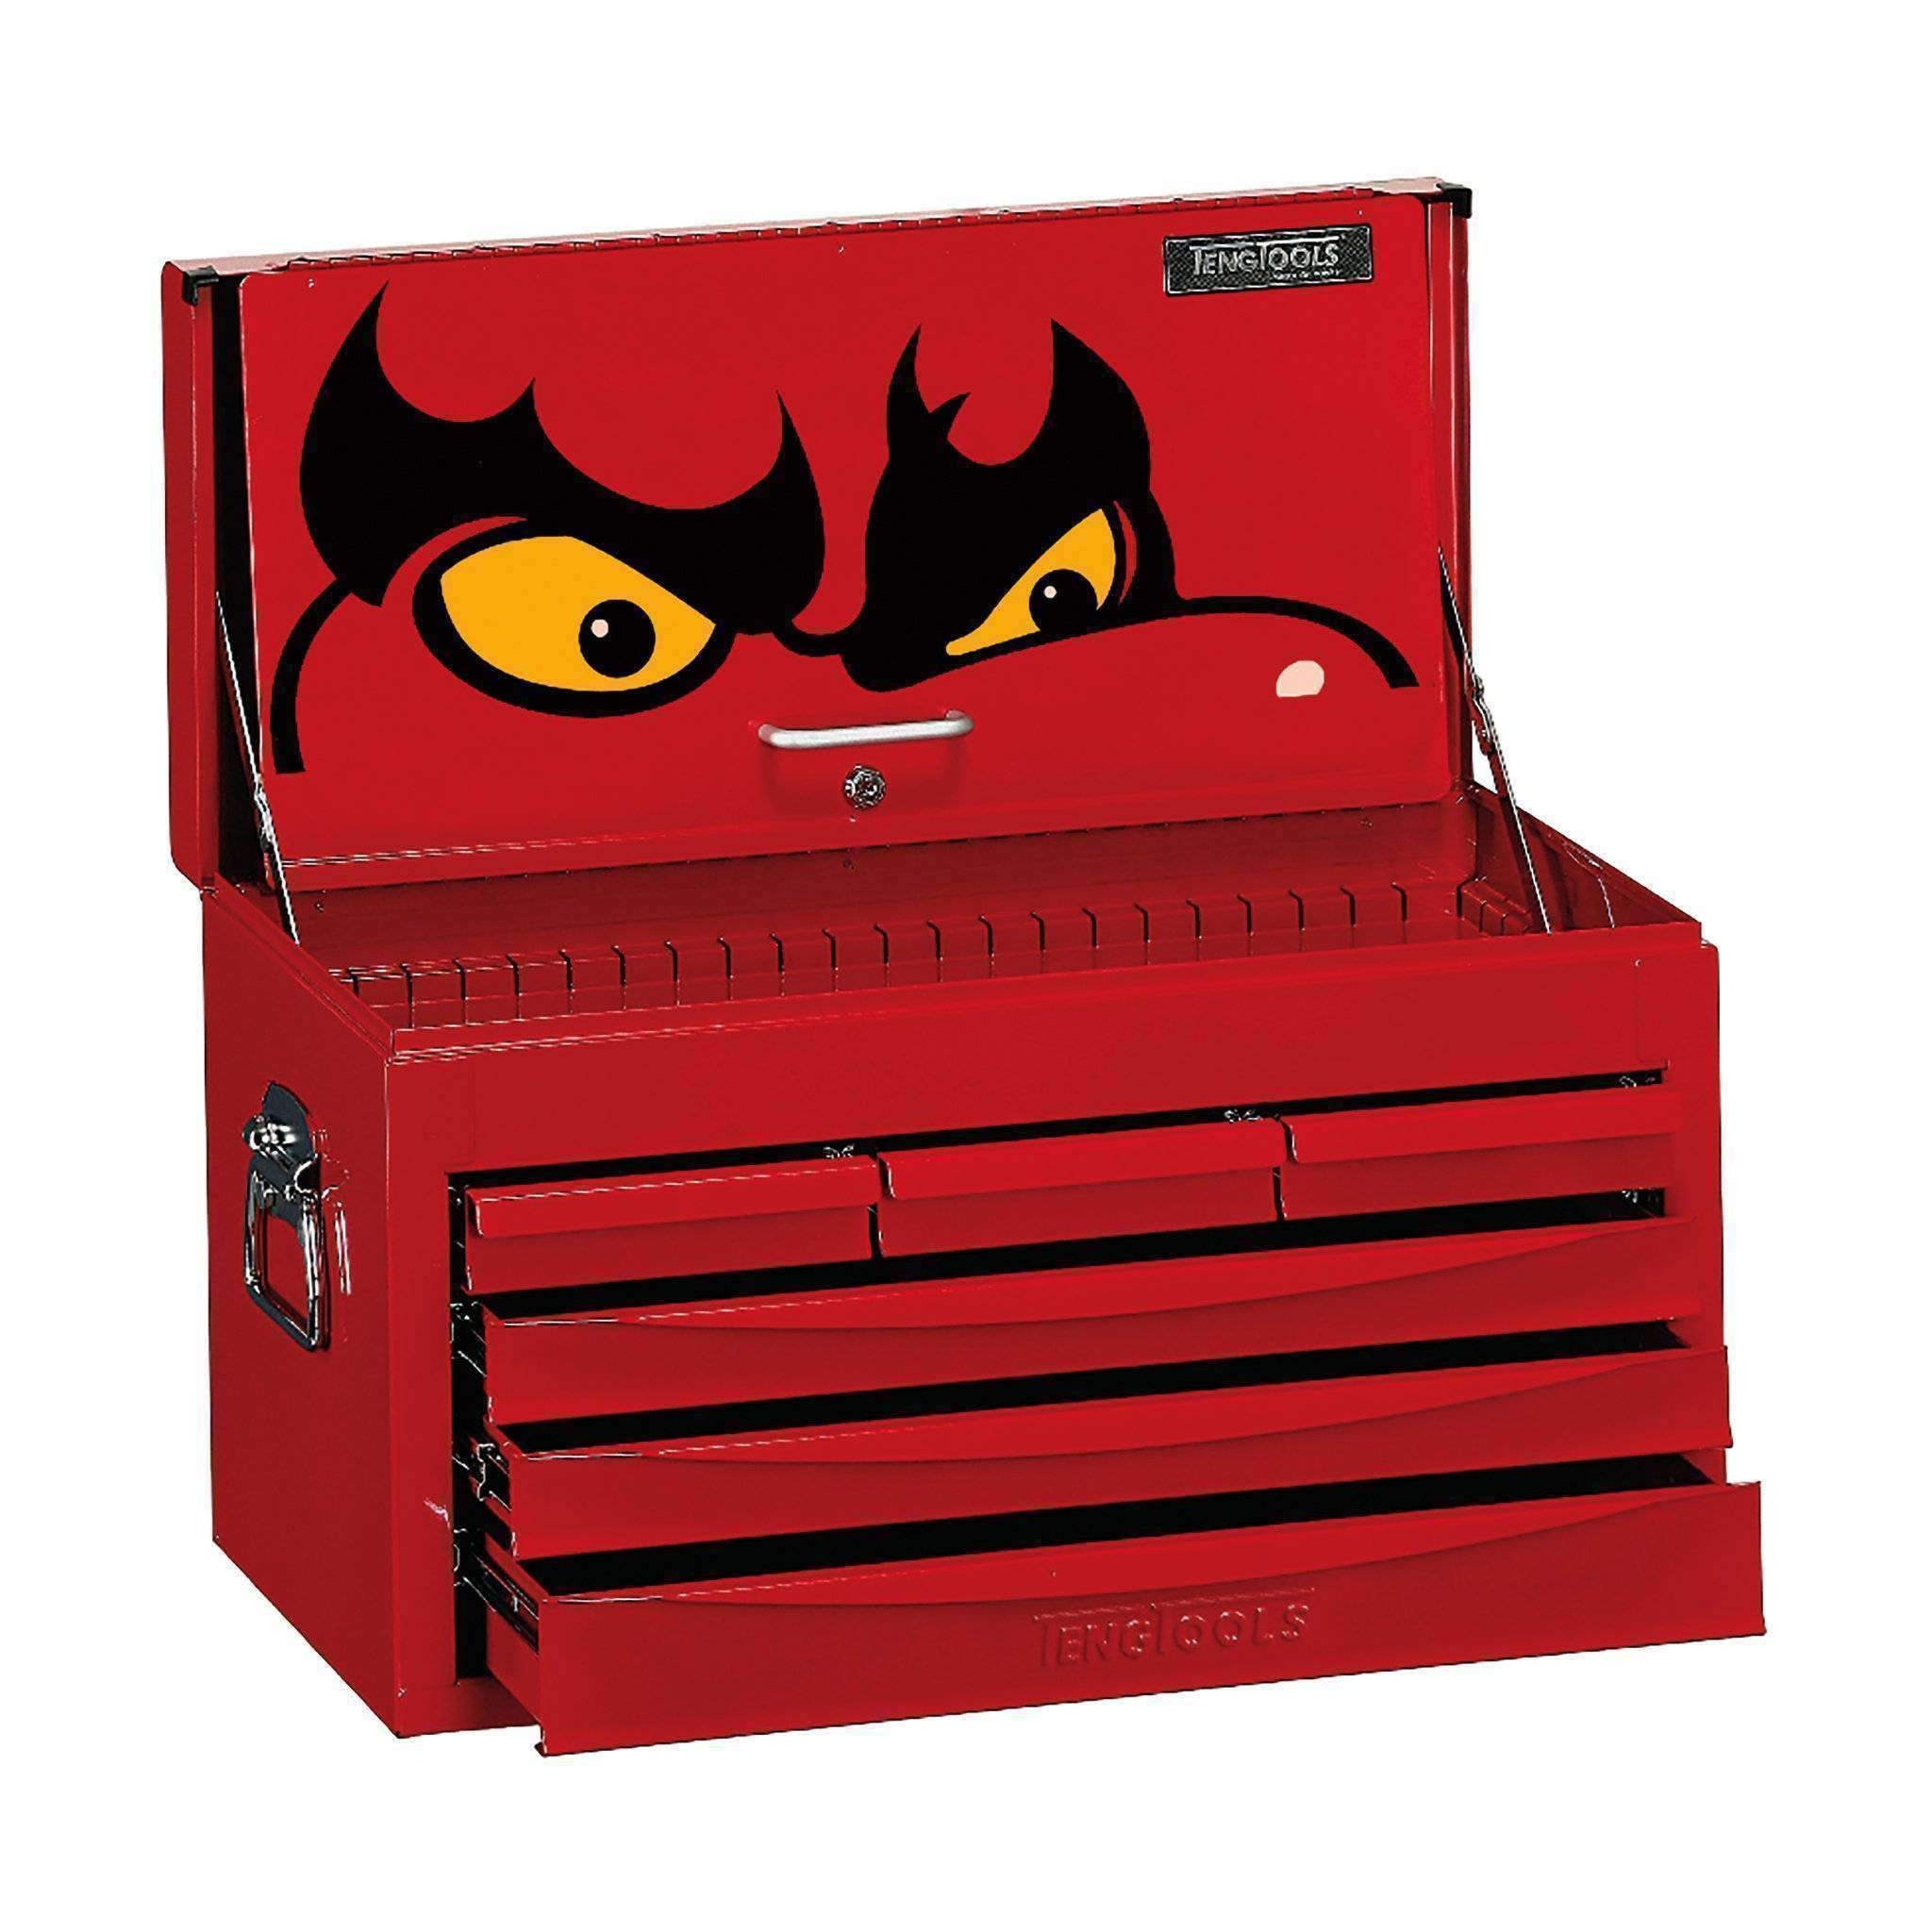 TC806SV 6 Drawer 8 Series Red Top Box with Ball Bearing Slides